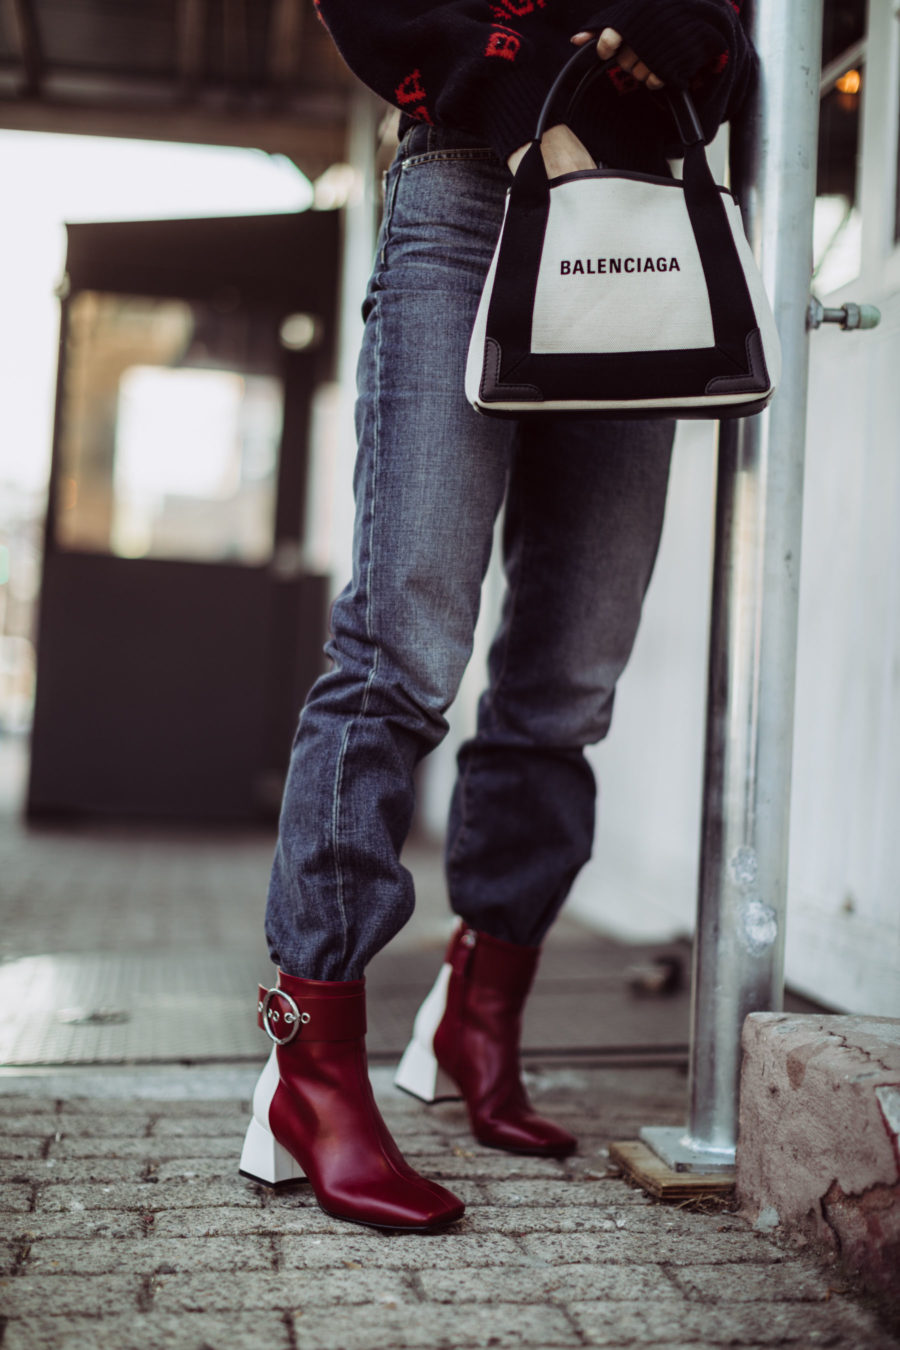 Must-Have Brands to Rock the Logomania Trend - Balenciaga Logo Sweater, Balenciaga Tote, Dakar Boots, NYC Street Style // Notjessfashion.com